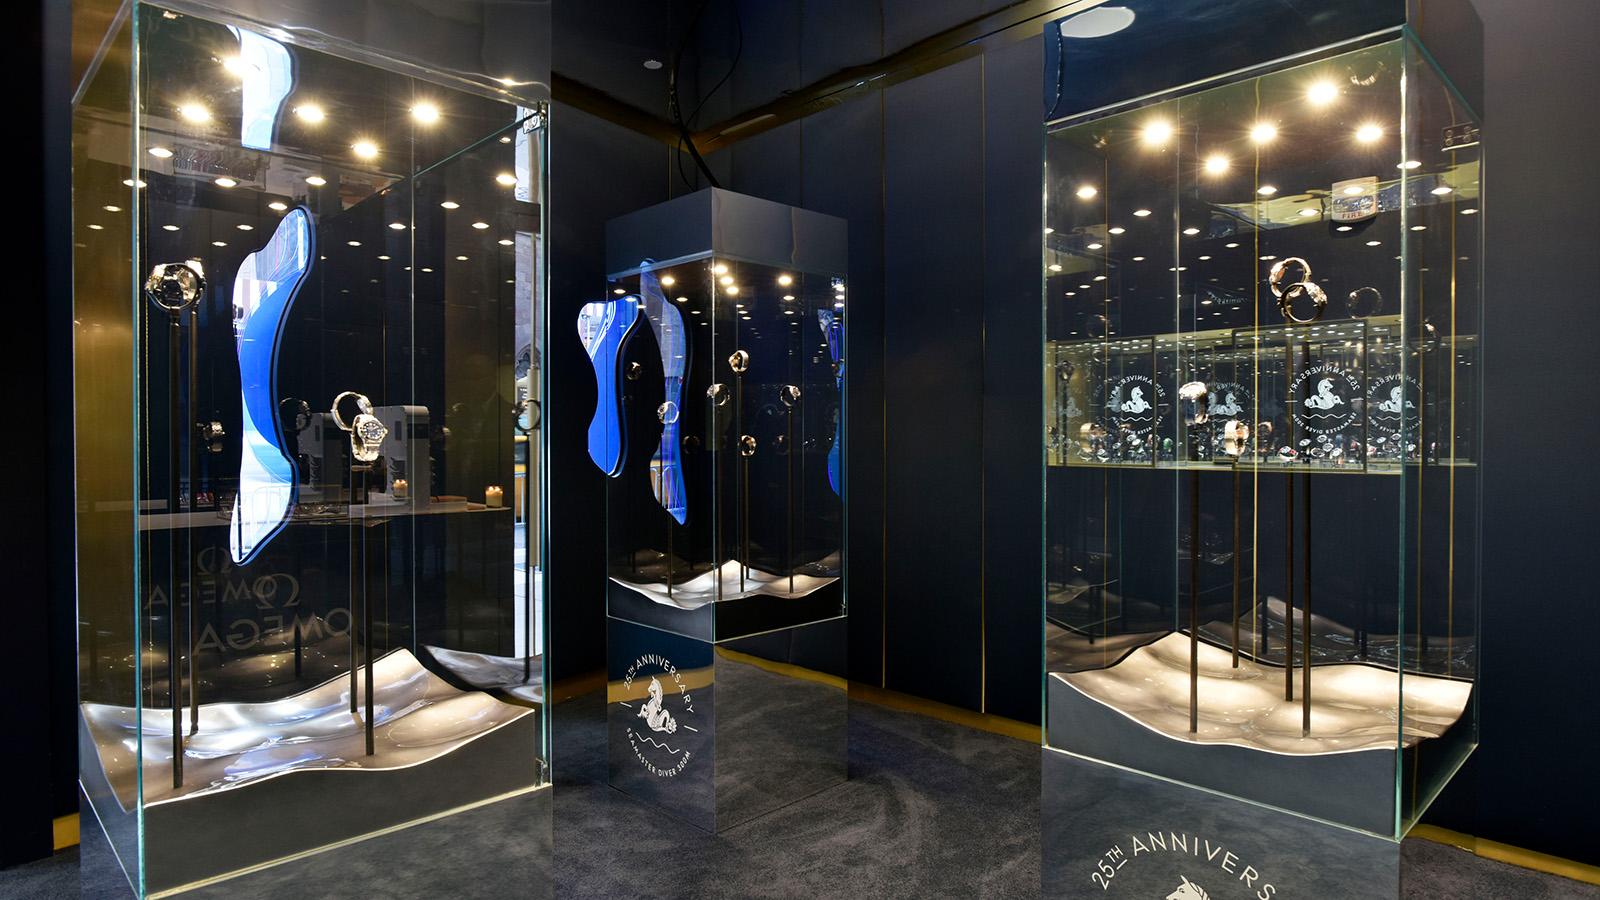 Inside the Seamaster shop of OMEGA in  New York